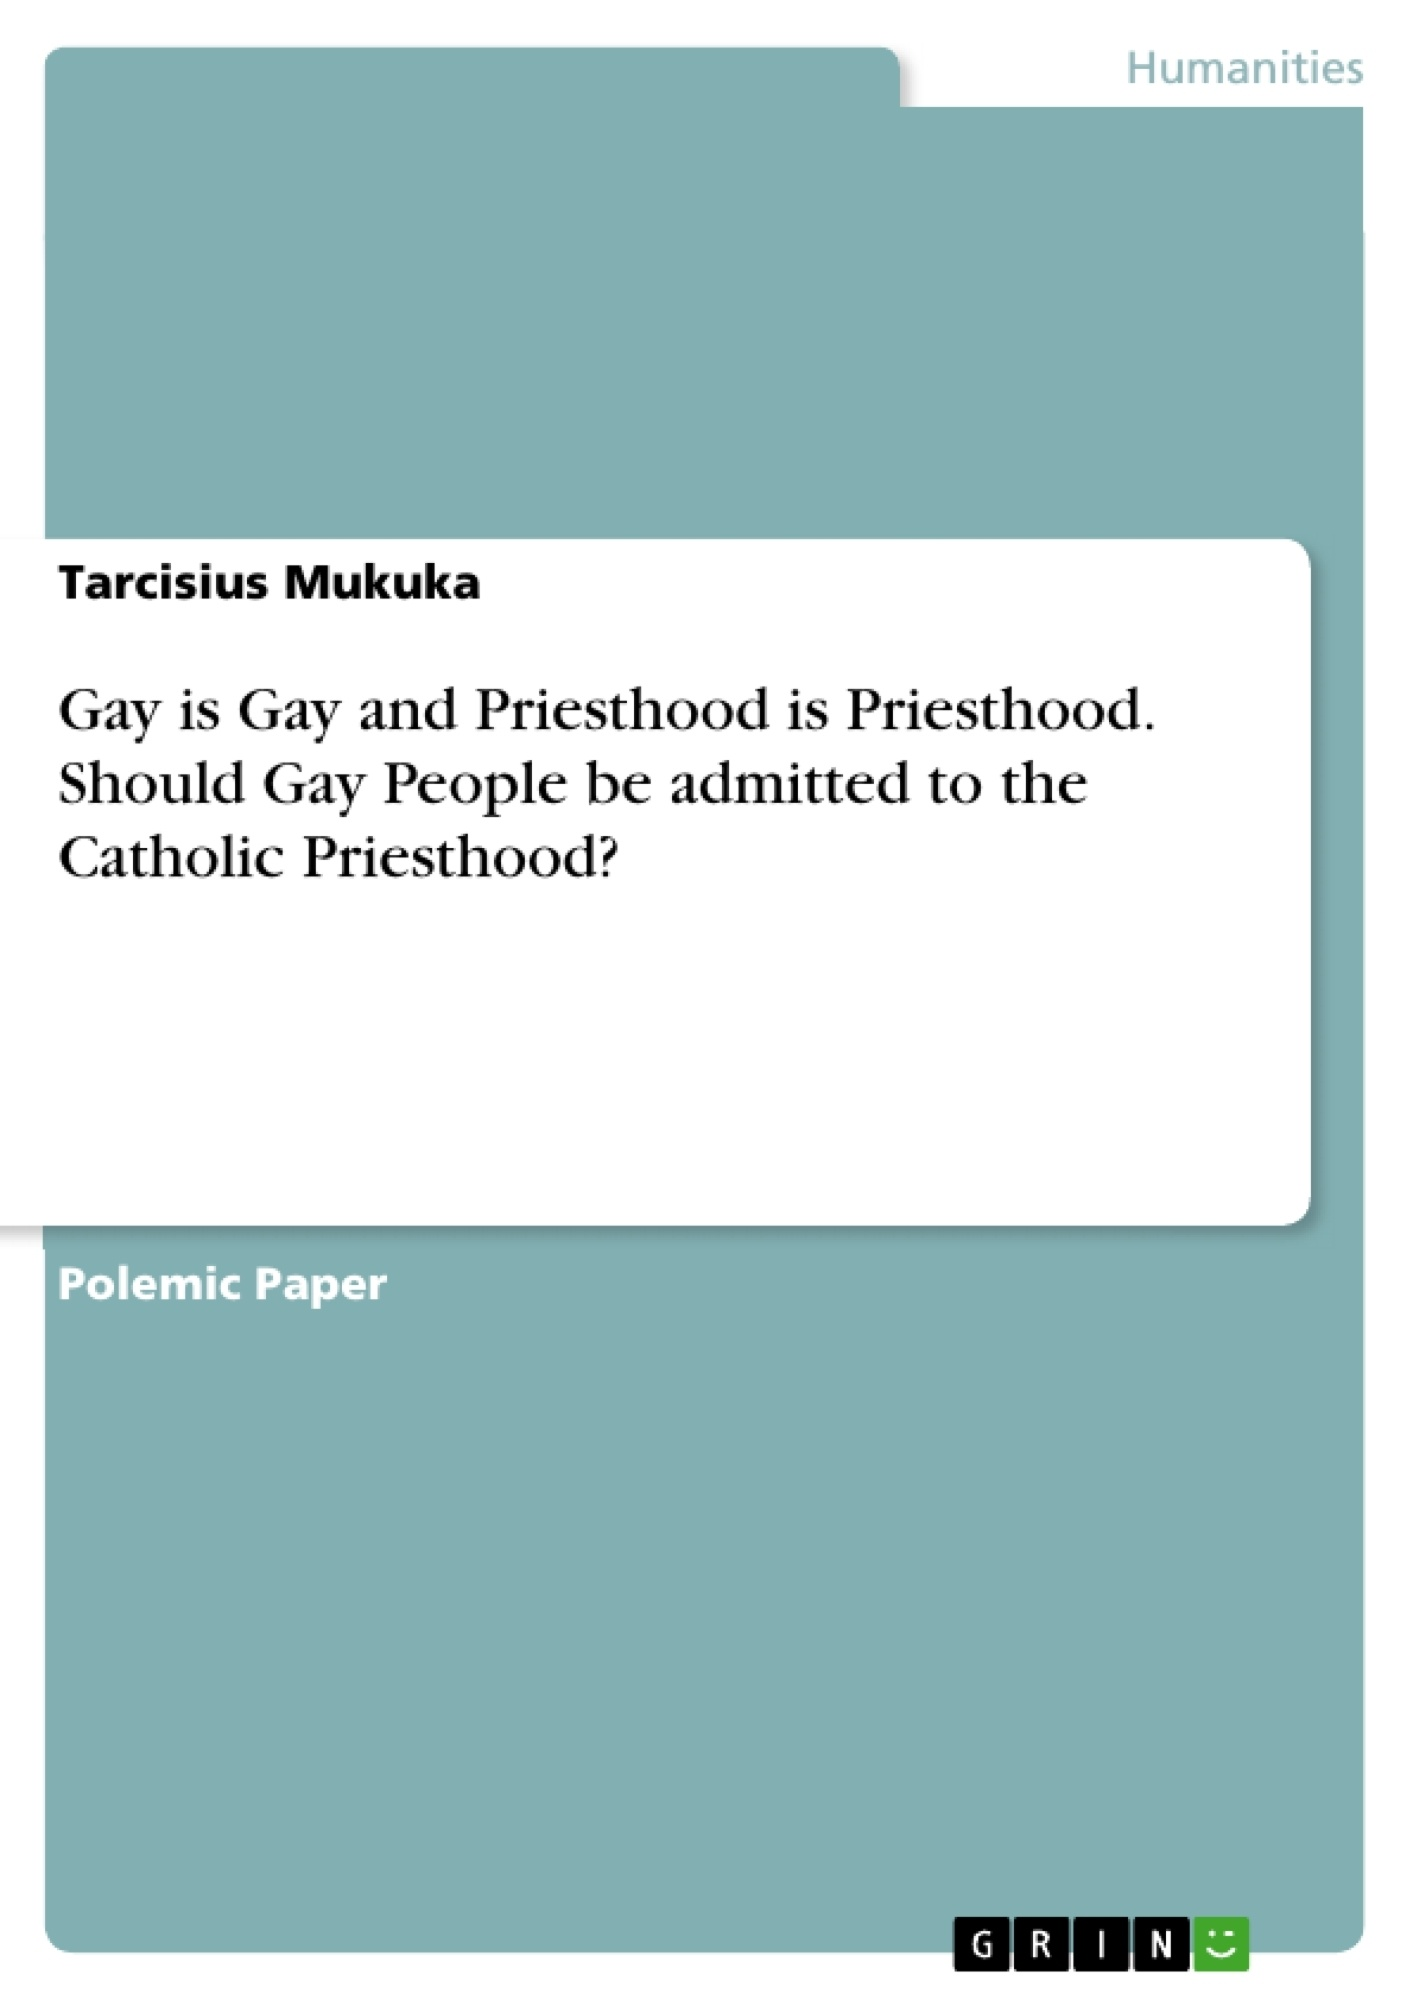 Title: Gay is Gay and Priesthood is Priesthood. Should Gay People be admitted to the Catholic Priesthood?